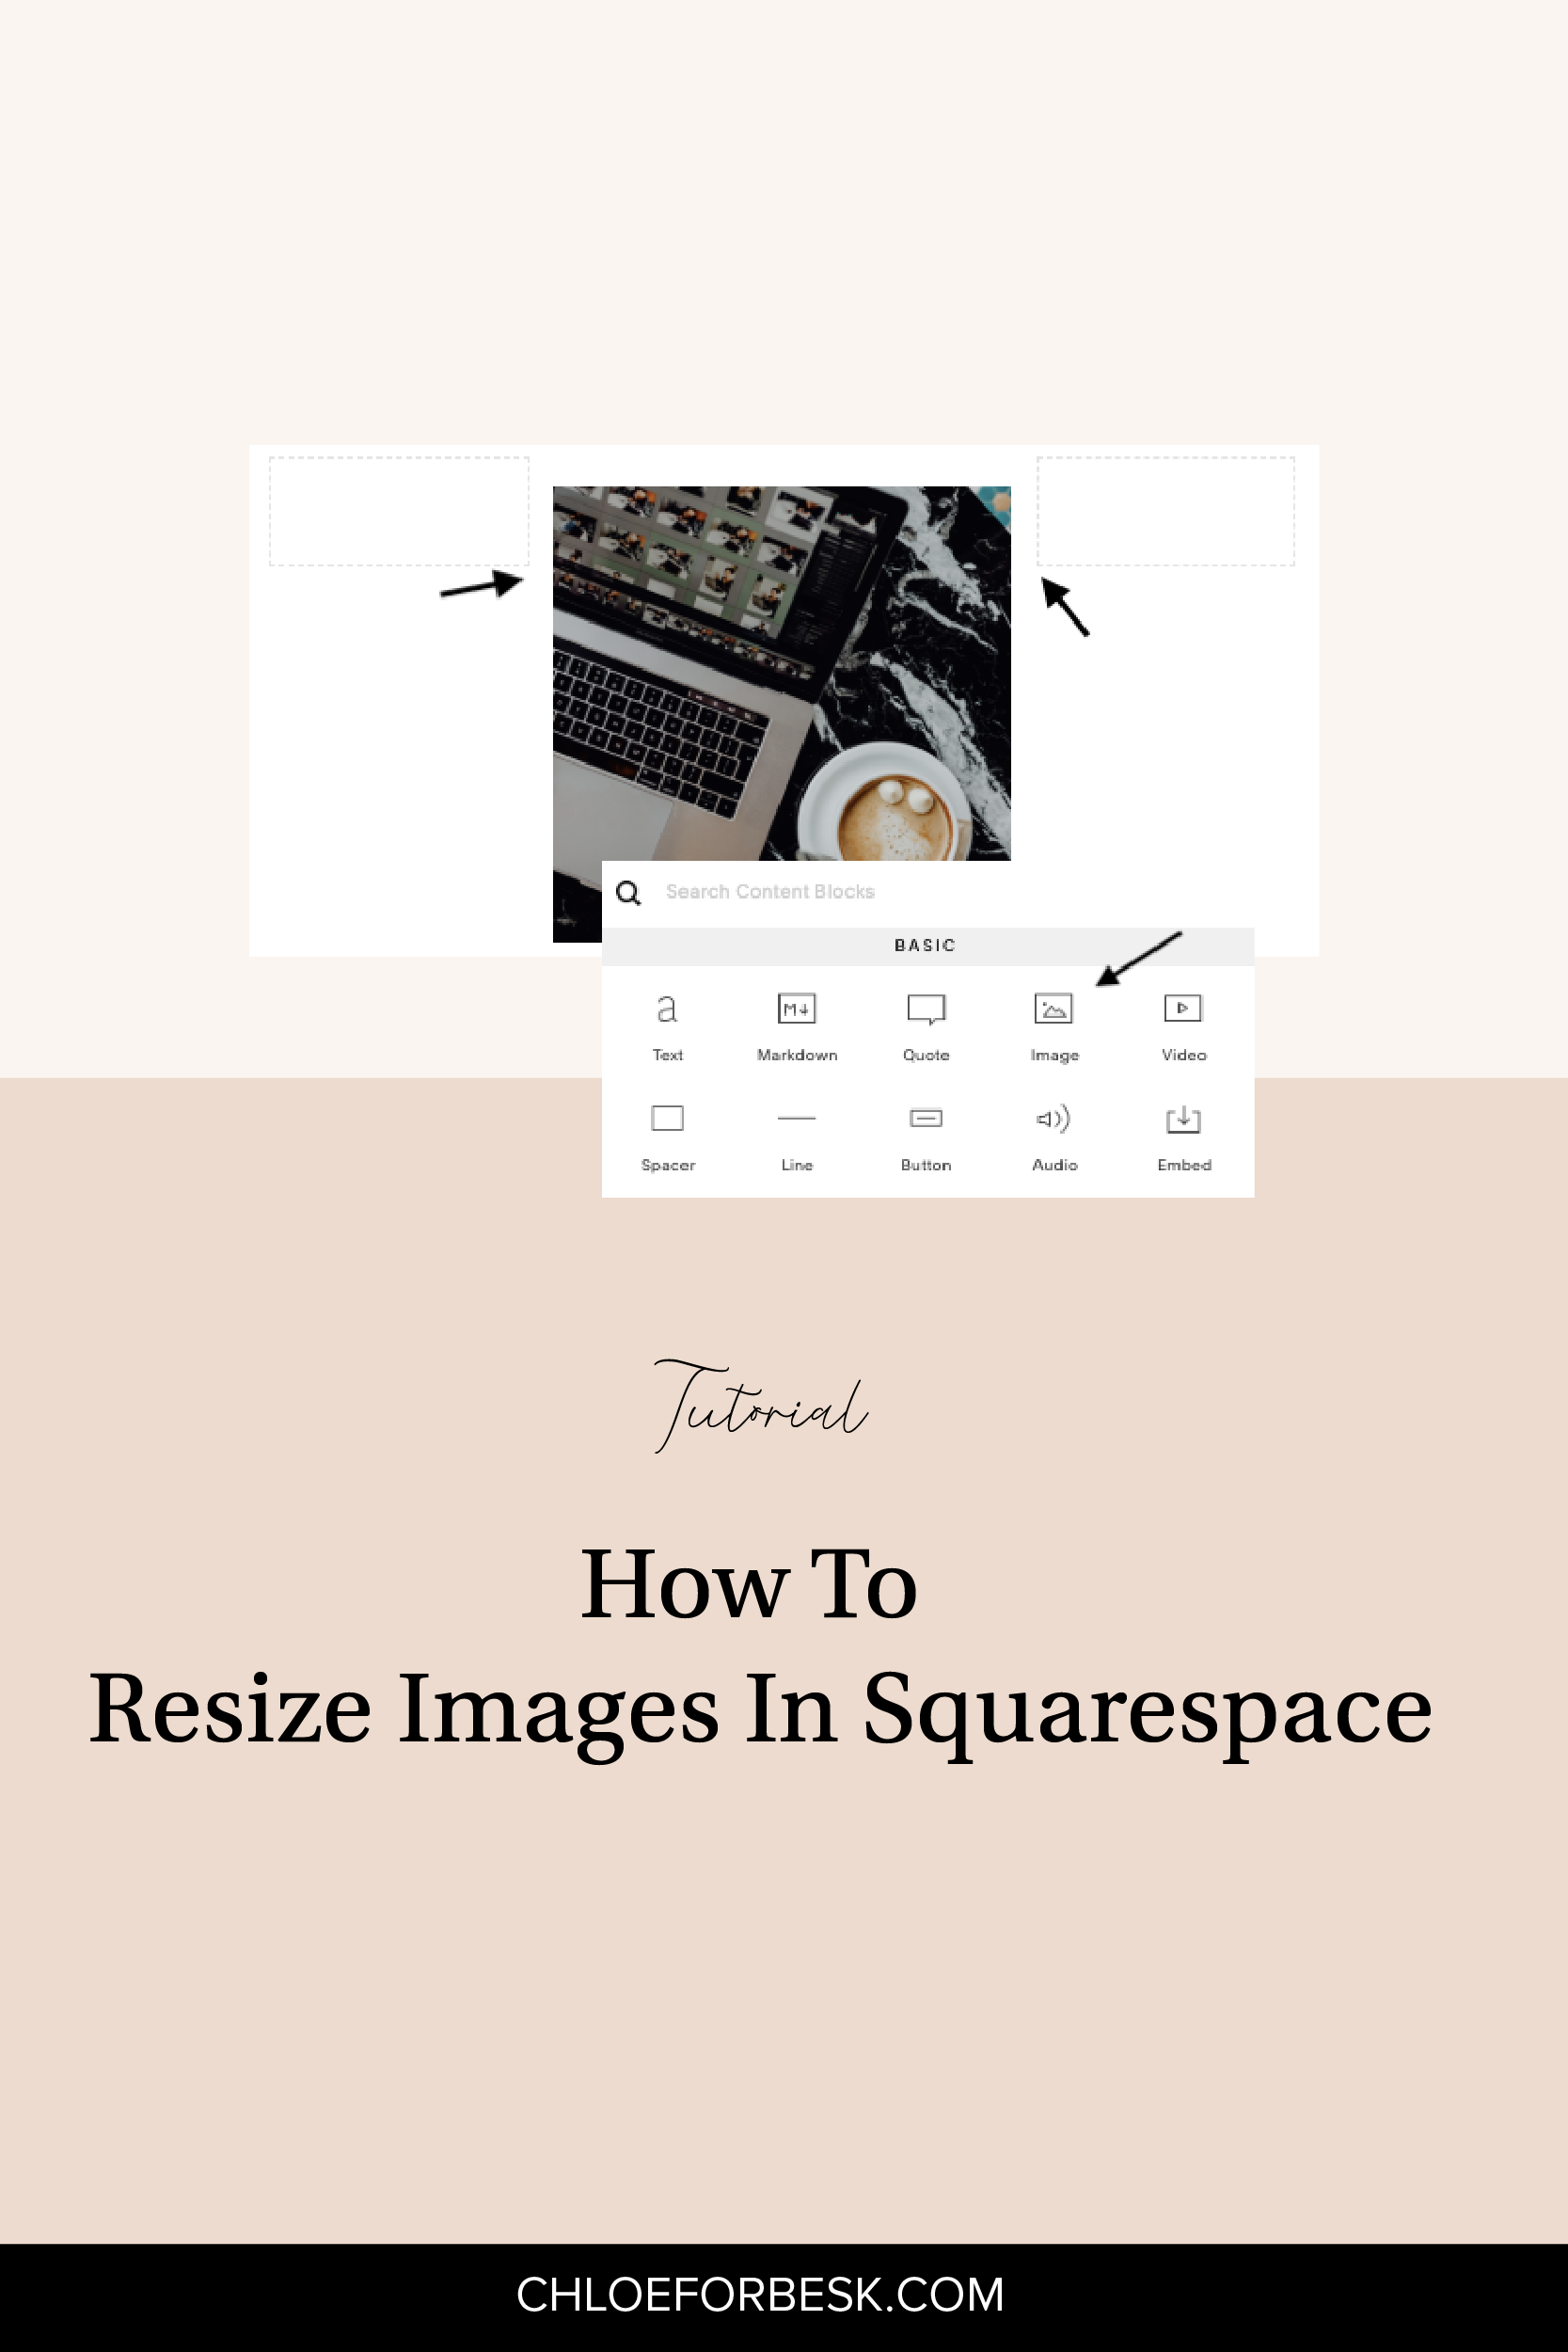 How To Resize Images In Squarespace-01.png